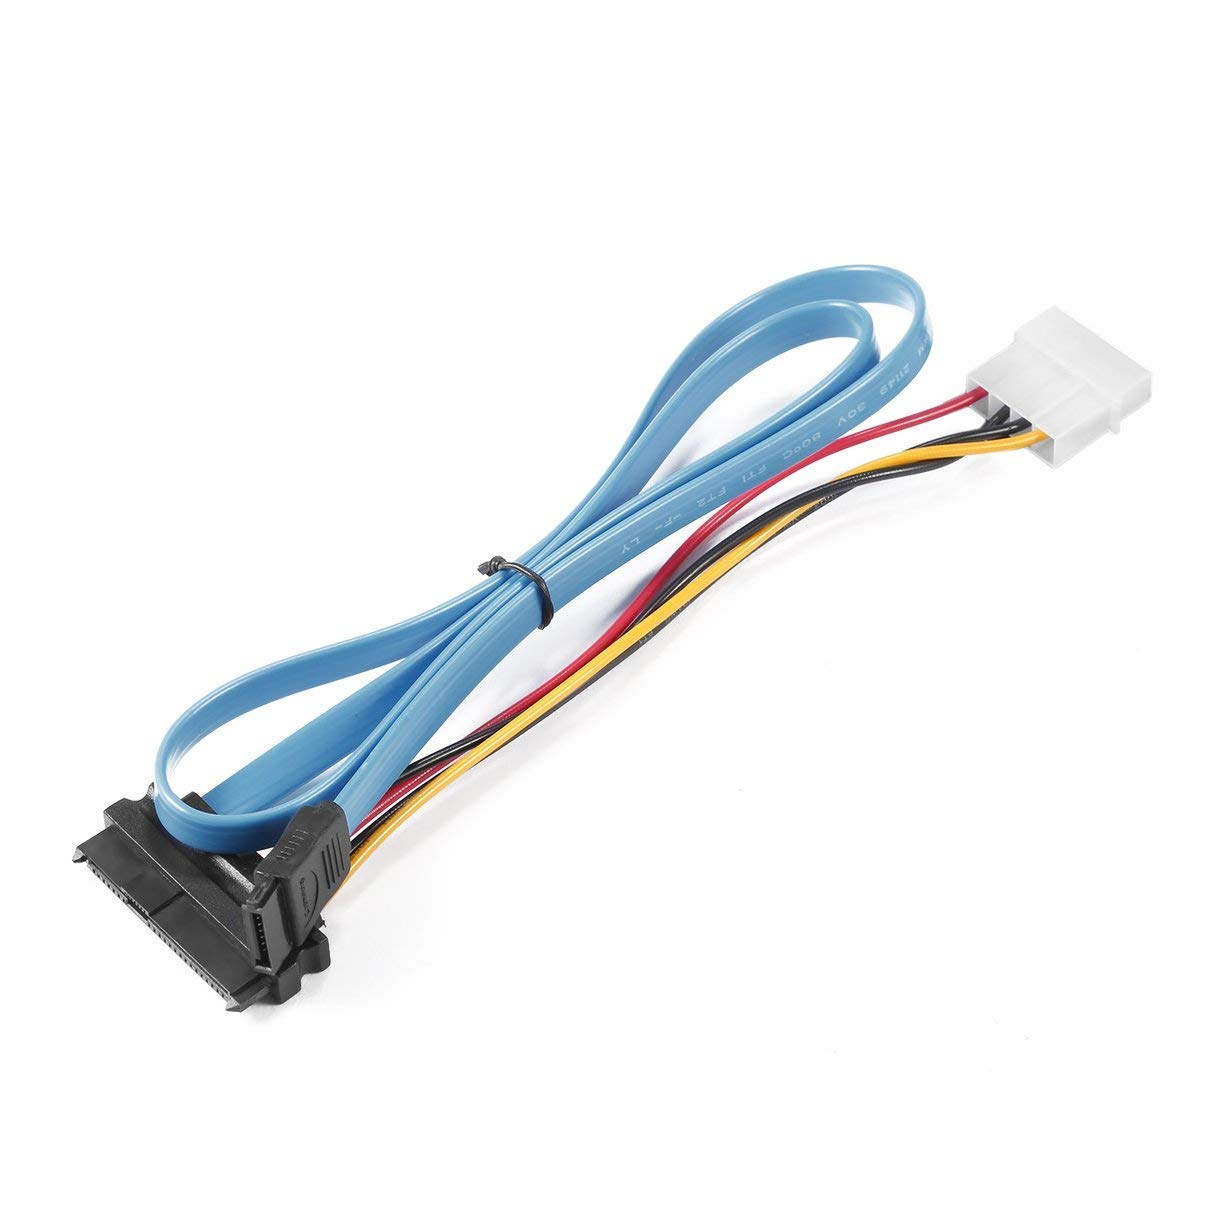 hight resolution of get quotations sata power cable 7 pin sata serial ata to sas 29 pin 4 pin